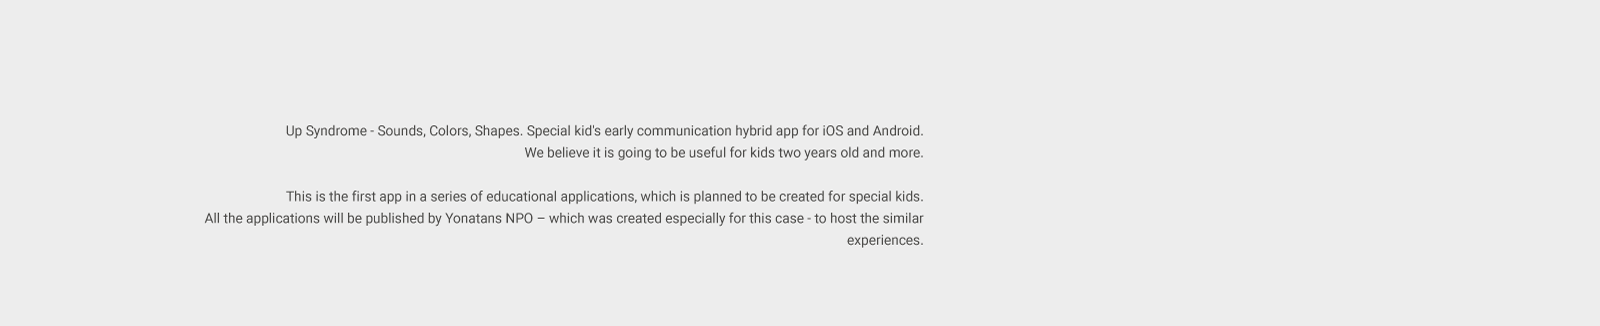 Up Syndrome — Special kids early communication app